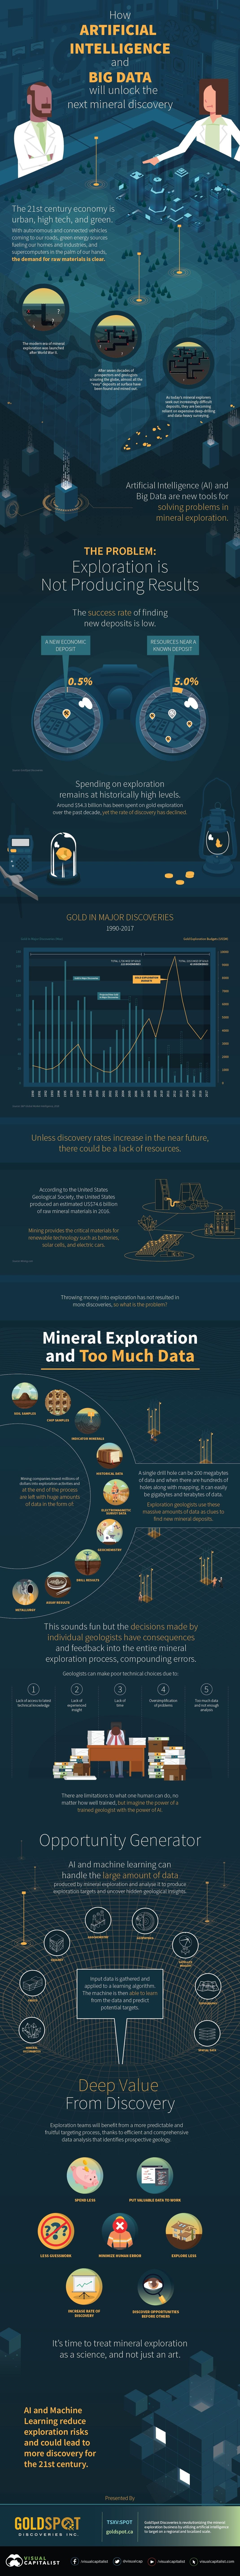 HOW ARTIFICIAL INTELLIGENCE AND BIG DATA WILL UNLOCK THE NEXT WAVE OF MINERAL DISCOVERIES #INFOGRAPHIC